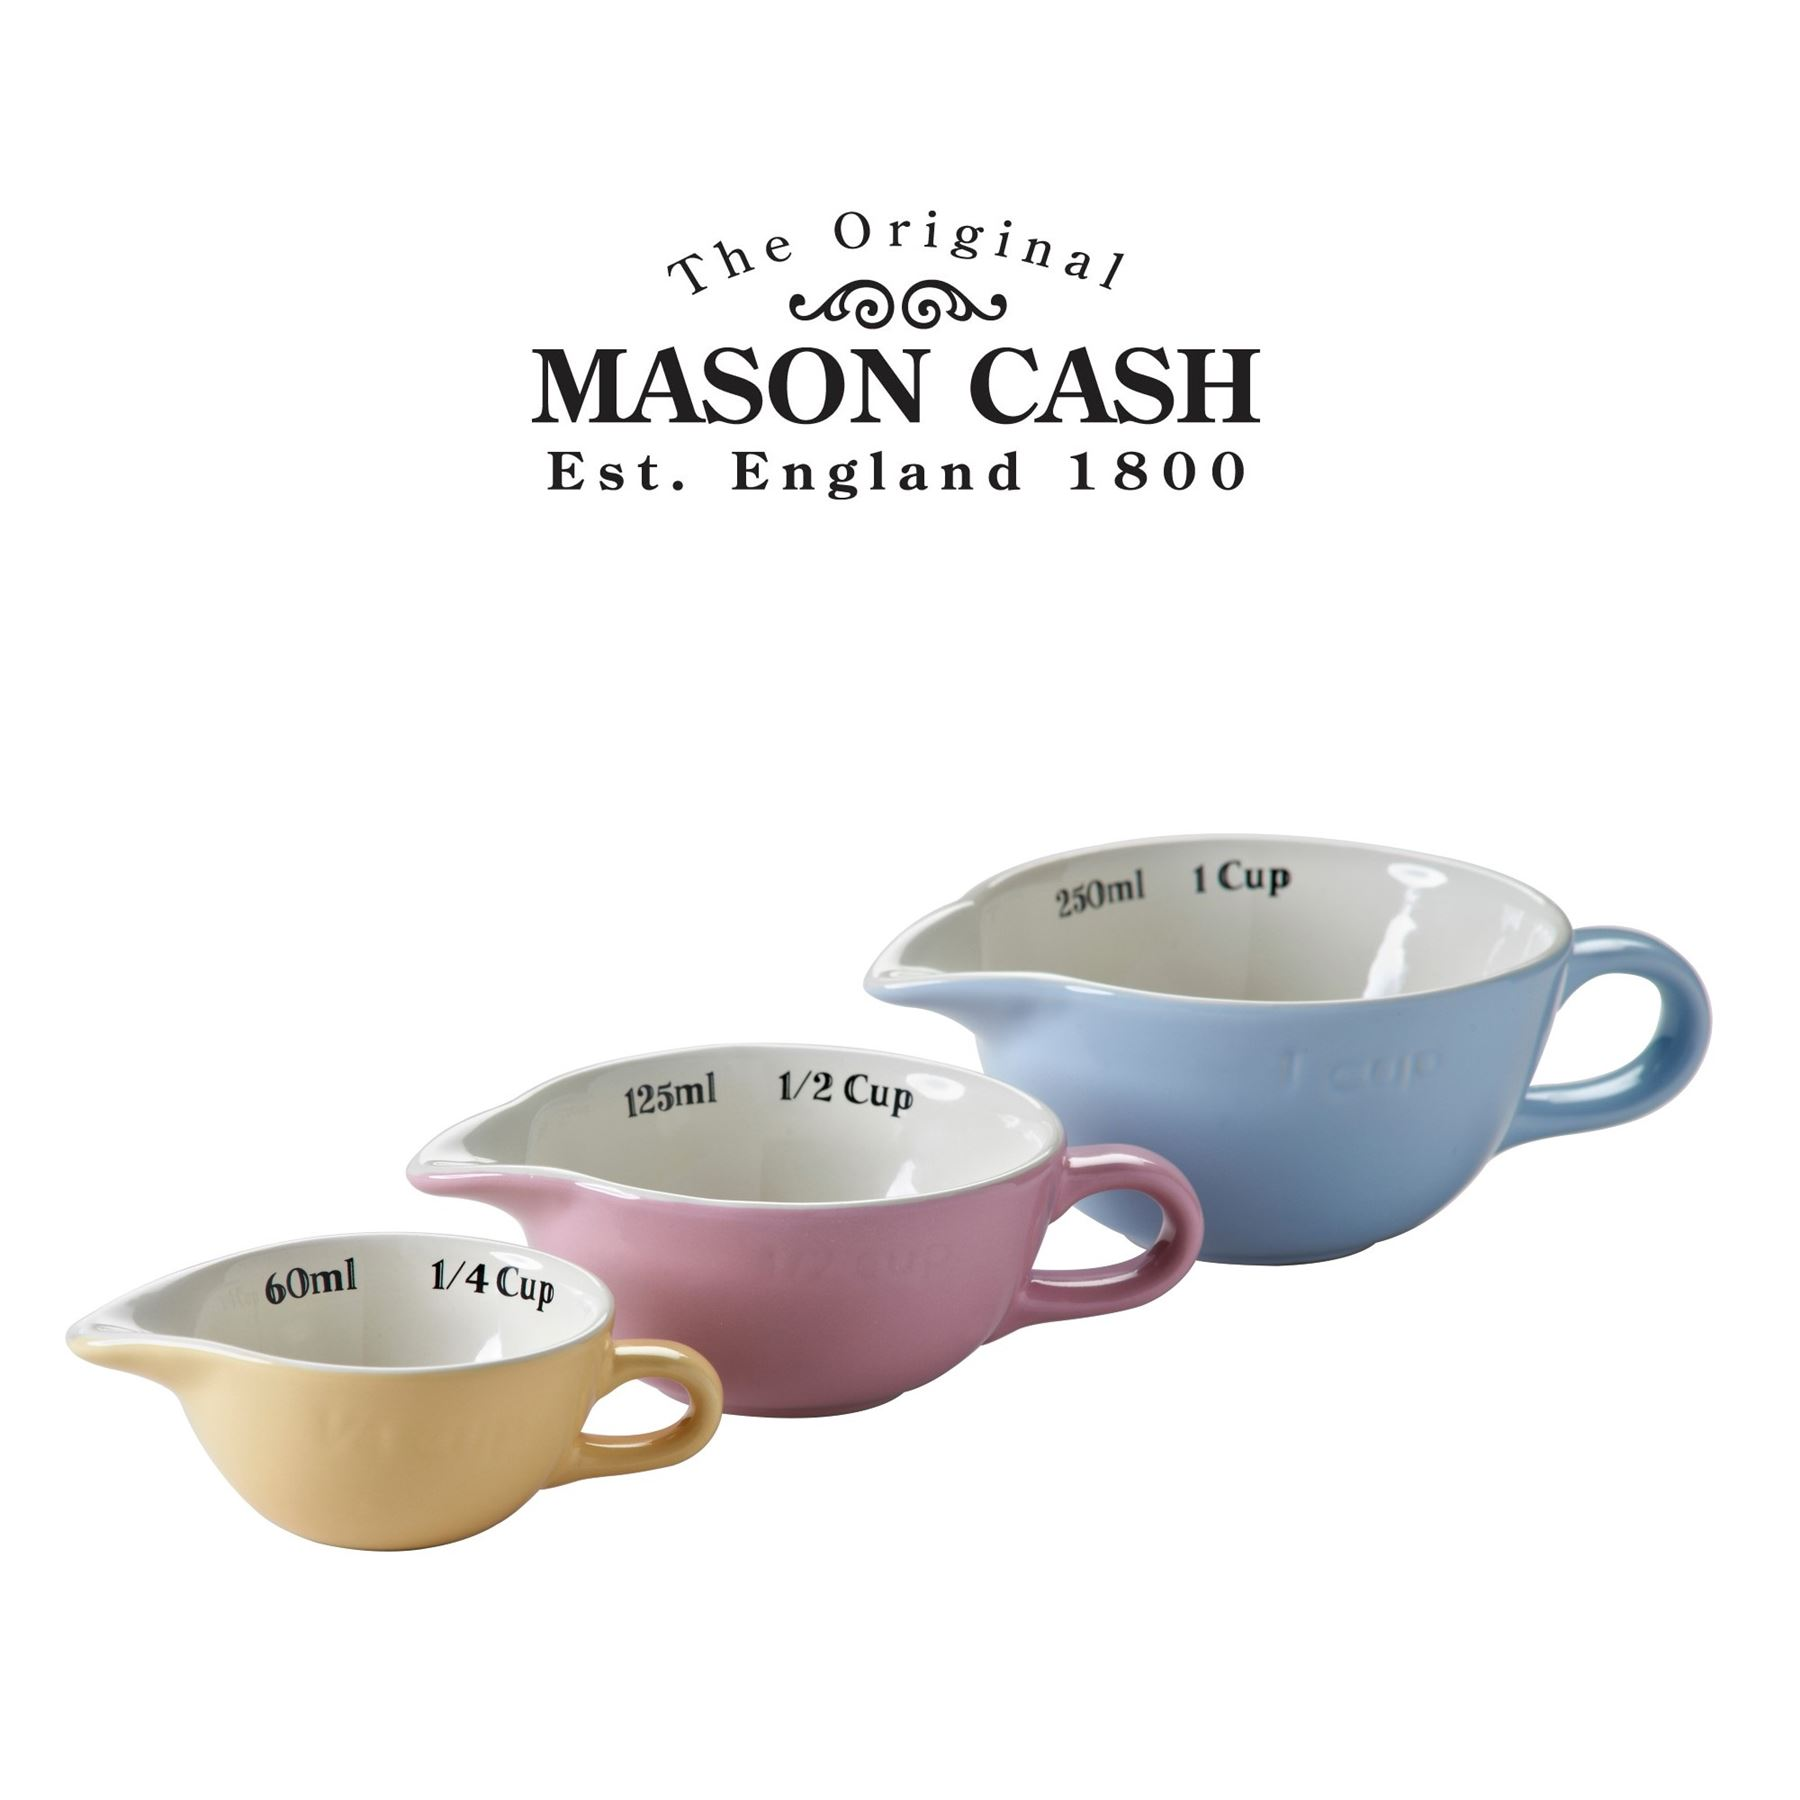 Amazon Messbecher Küche Mason Cash Backen Mein Tag Set Mit 3 Messbecher 60 125